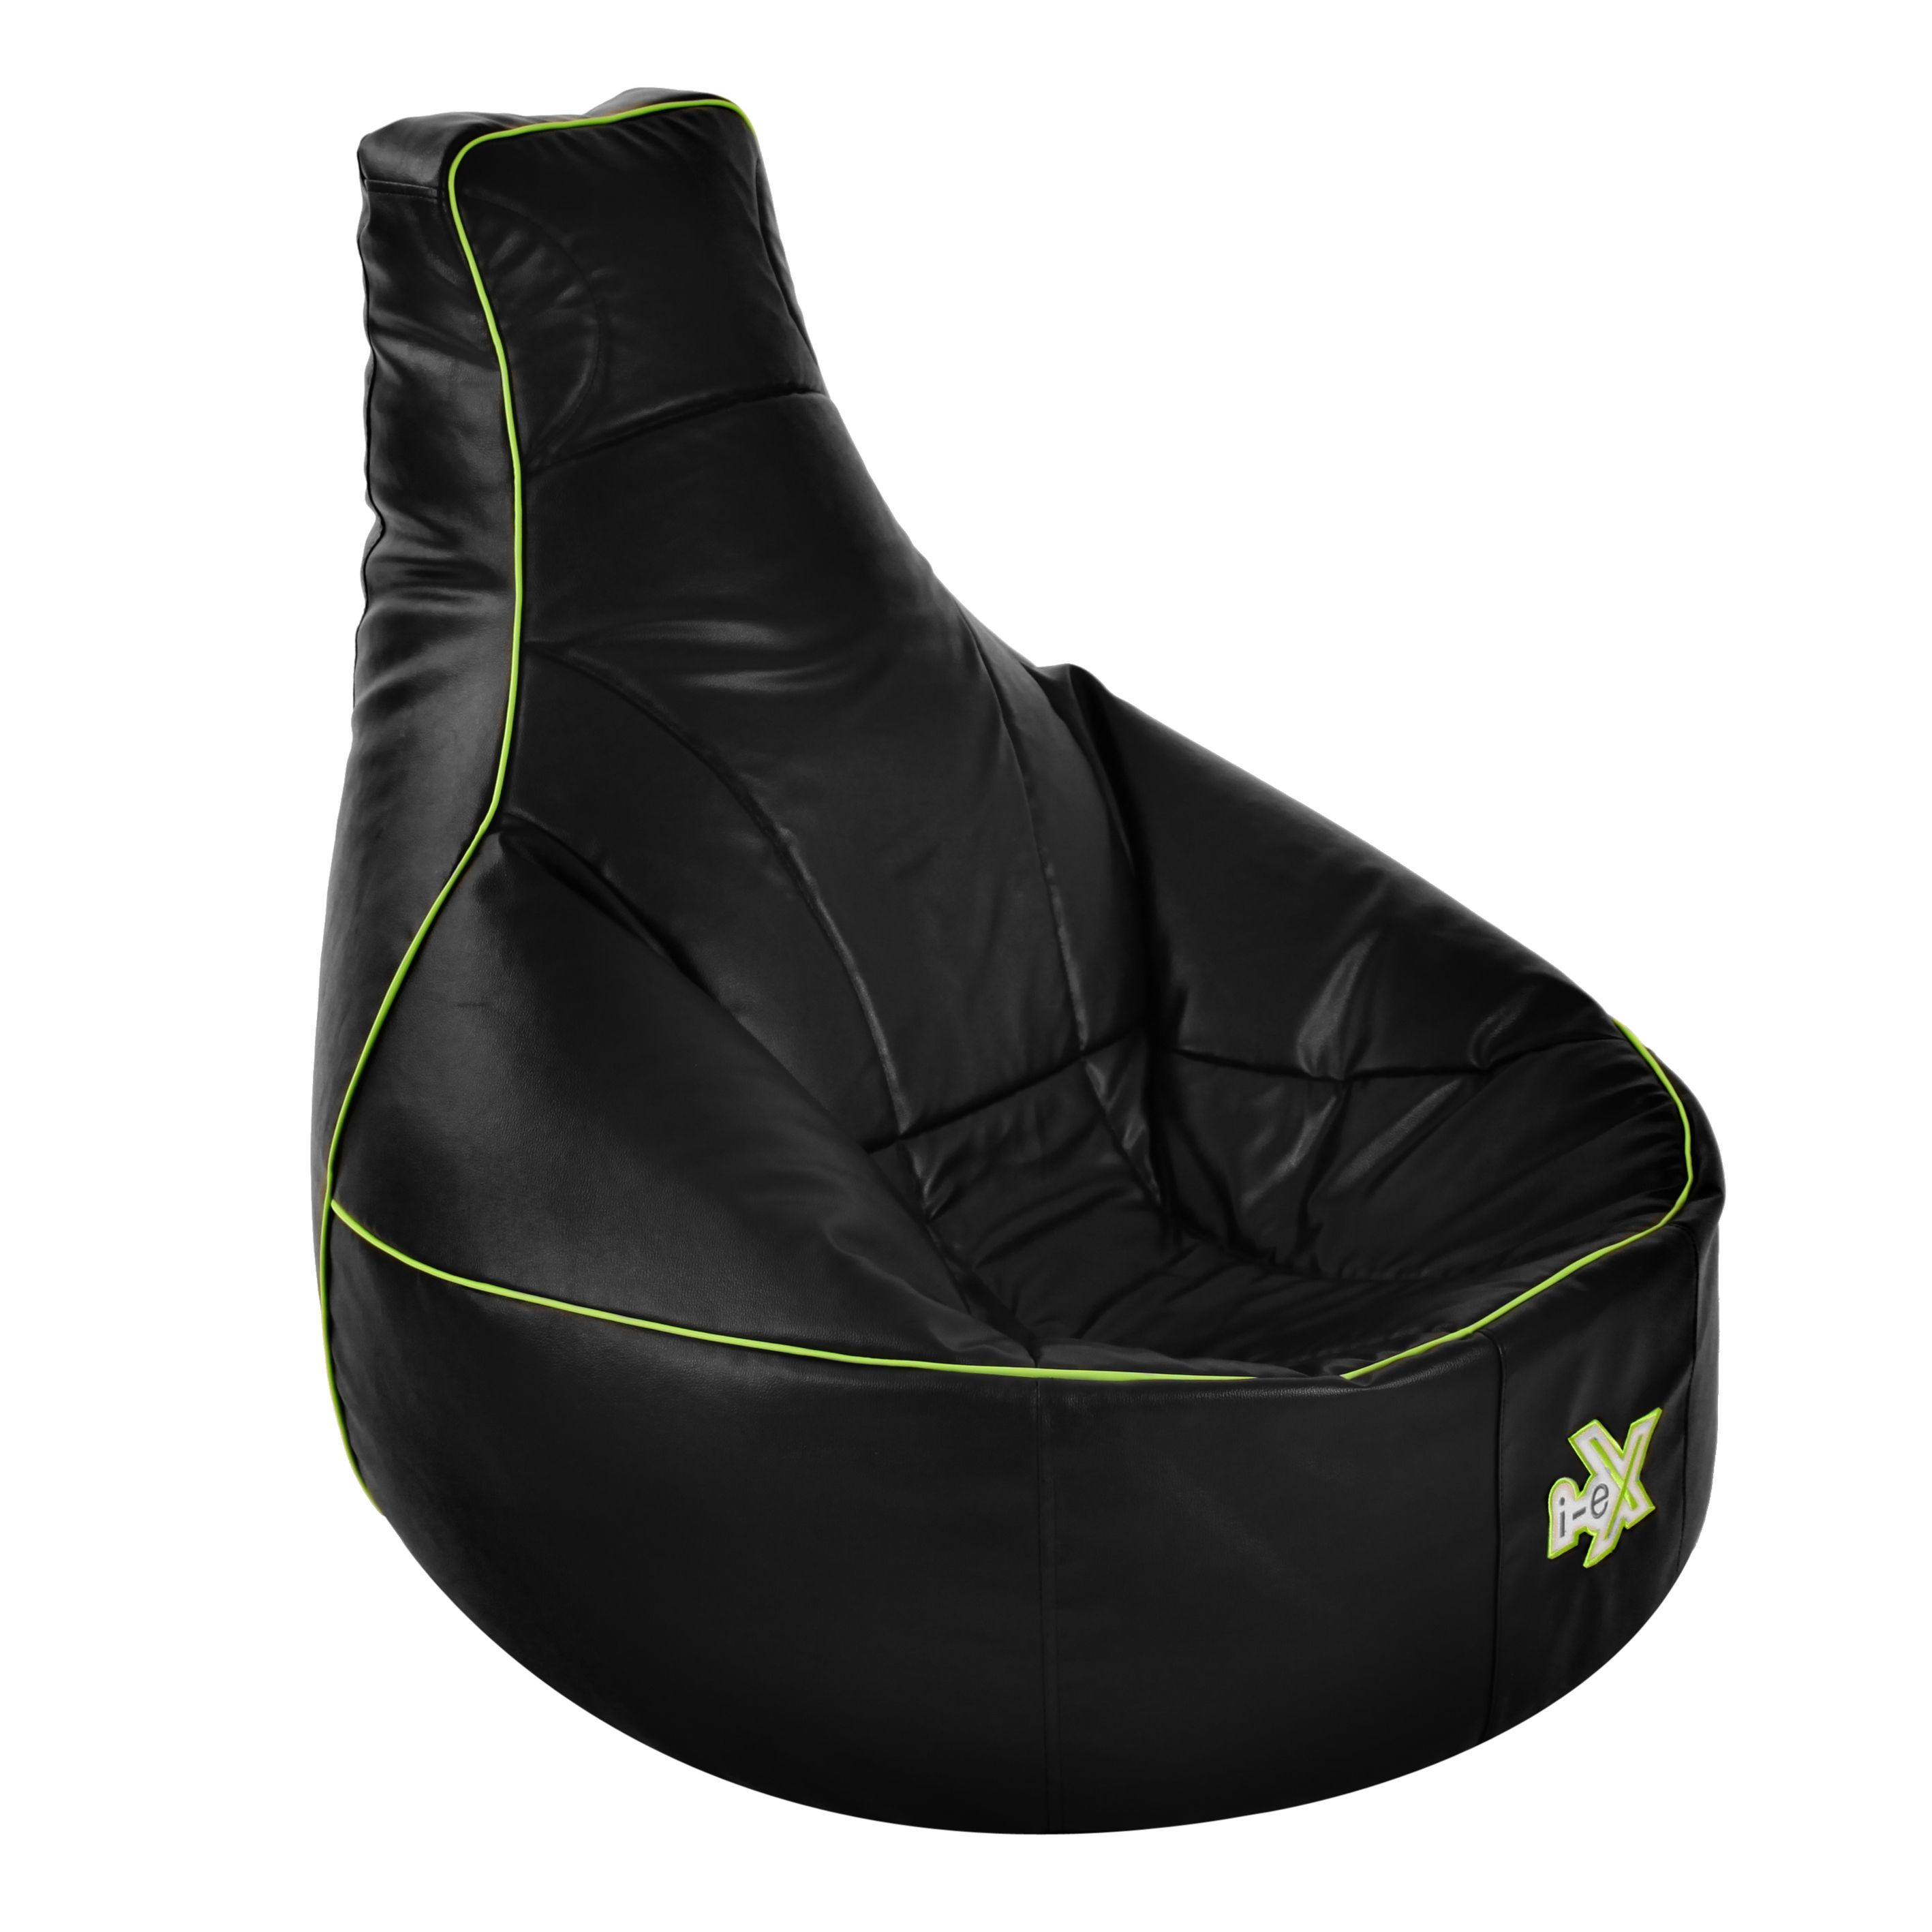 I Ex Gaming Chair Chairs Try A With Bean Filling And High Back Bag All No Pain